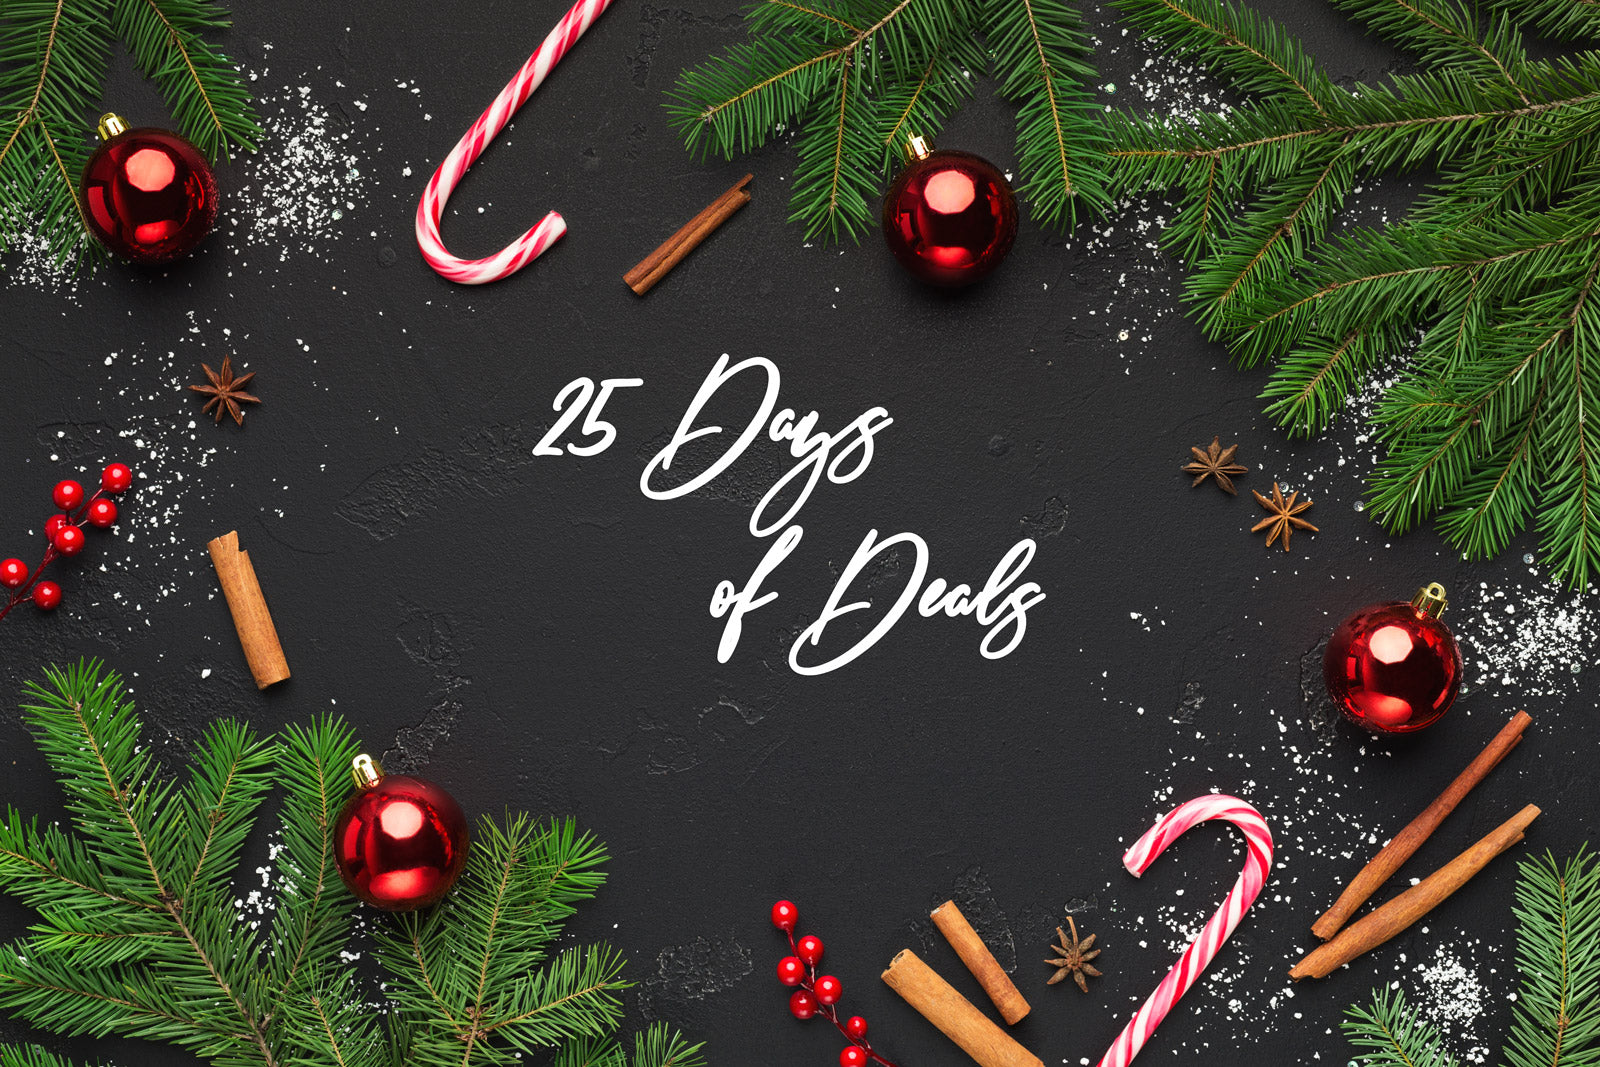 25 Days of Deals🎄🎅 - Week 2